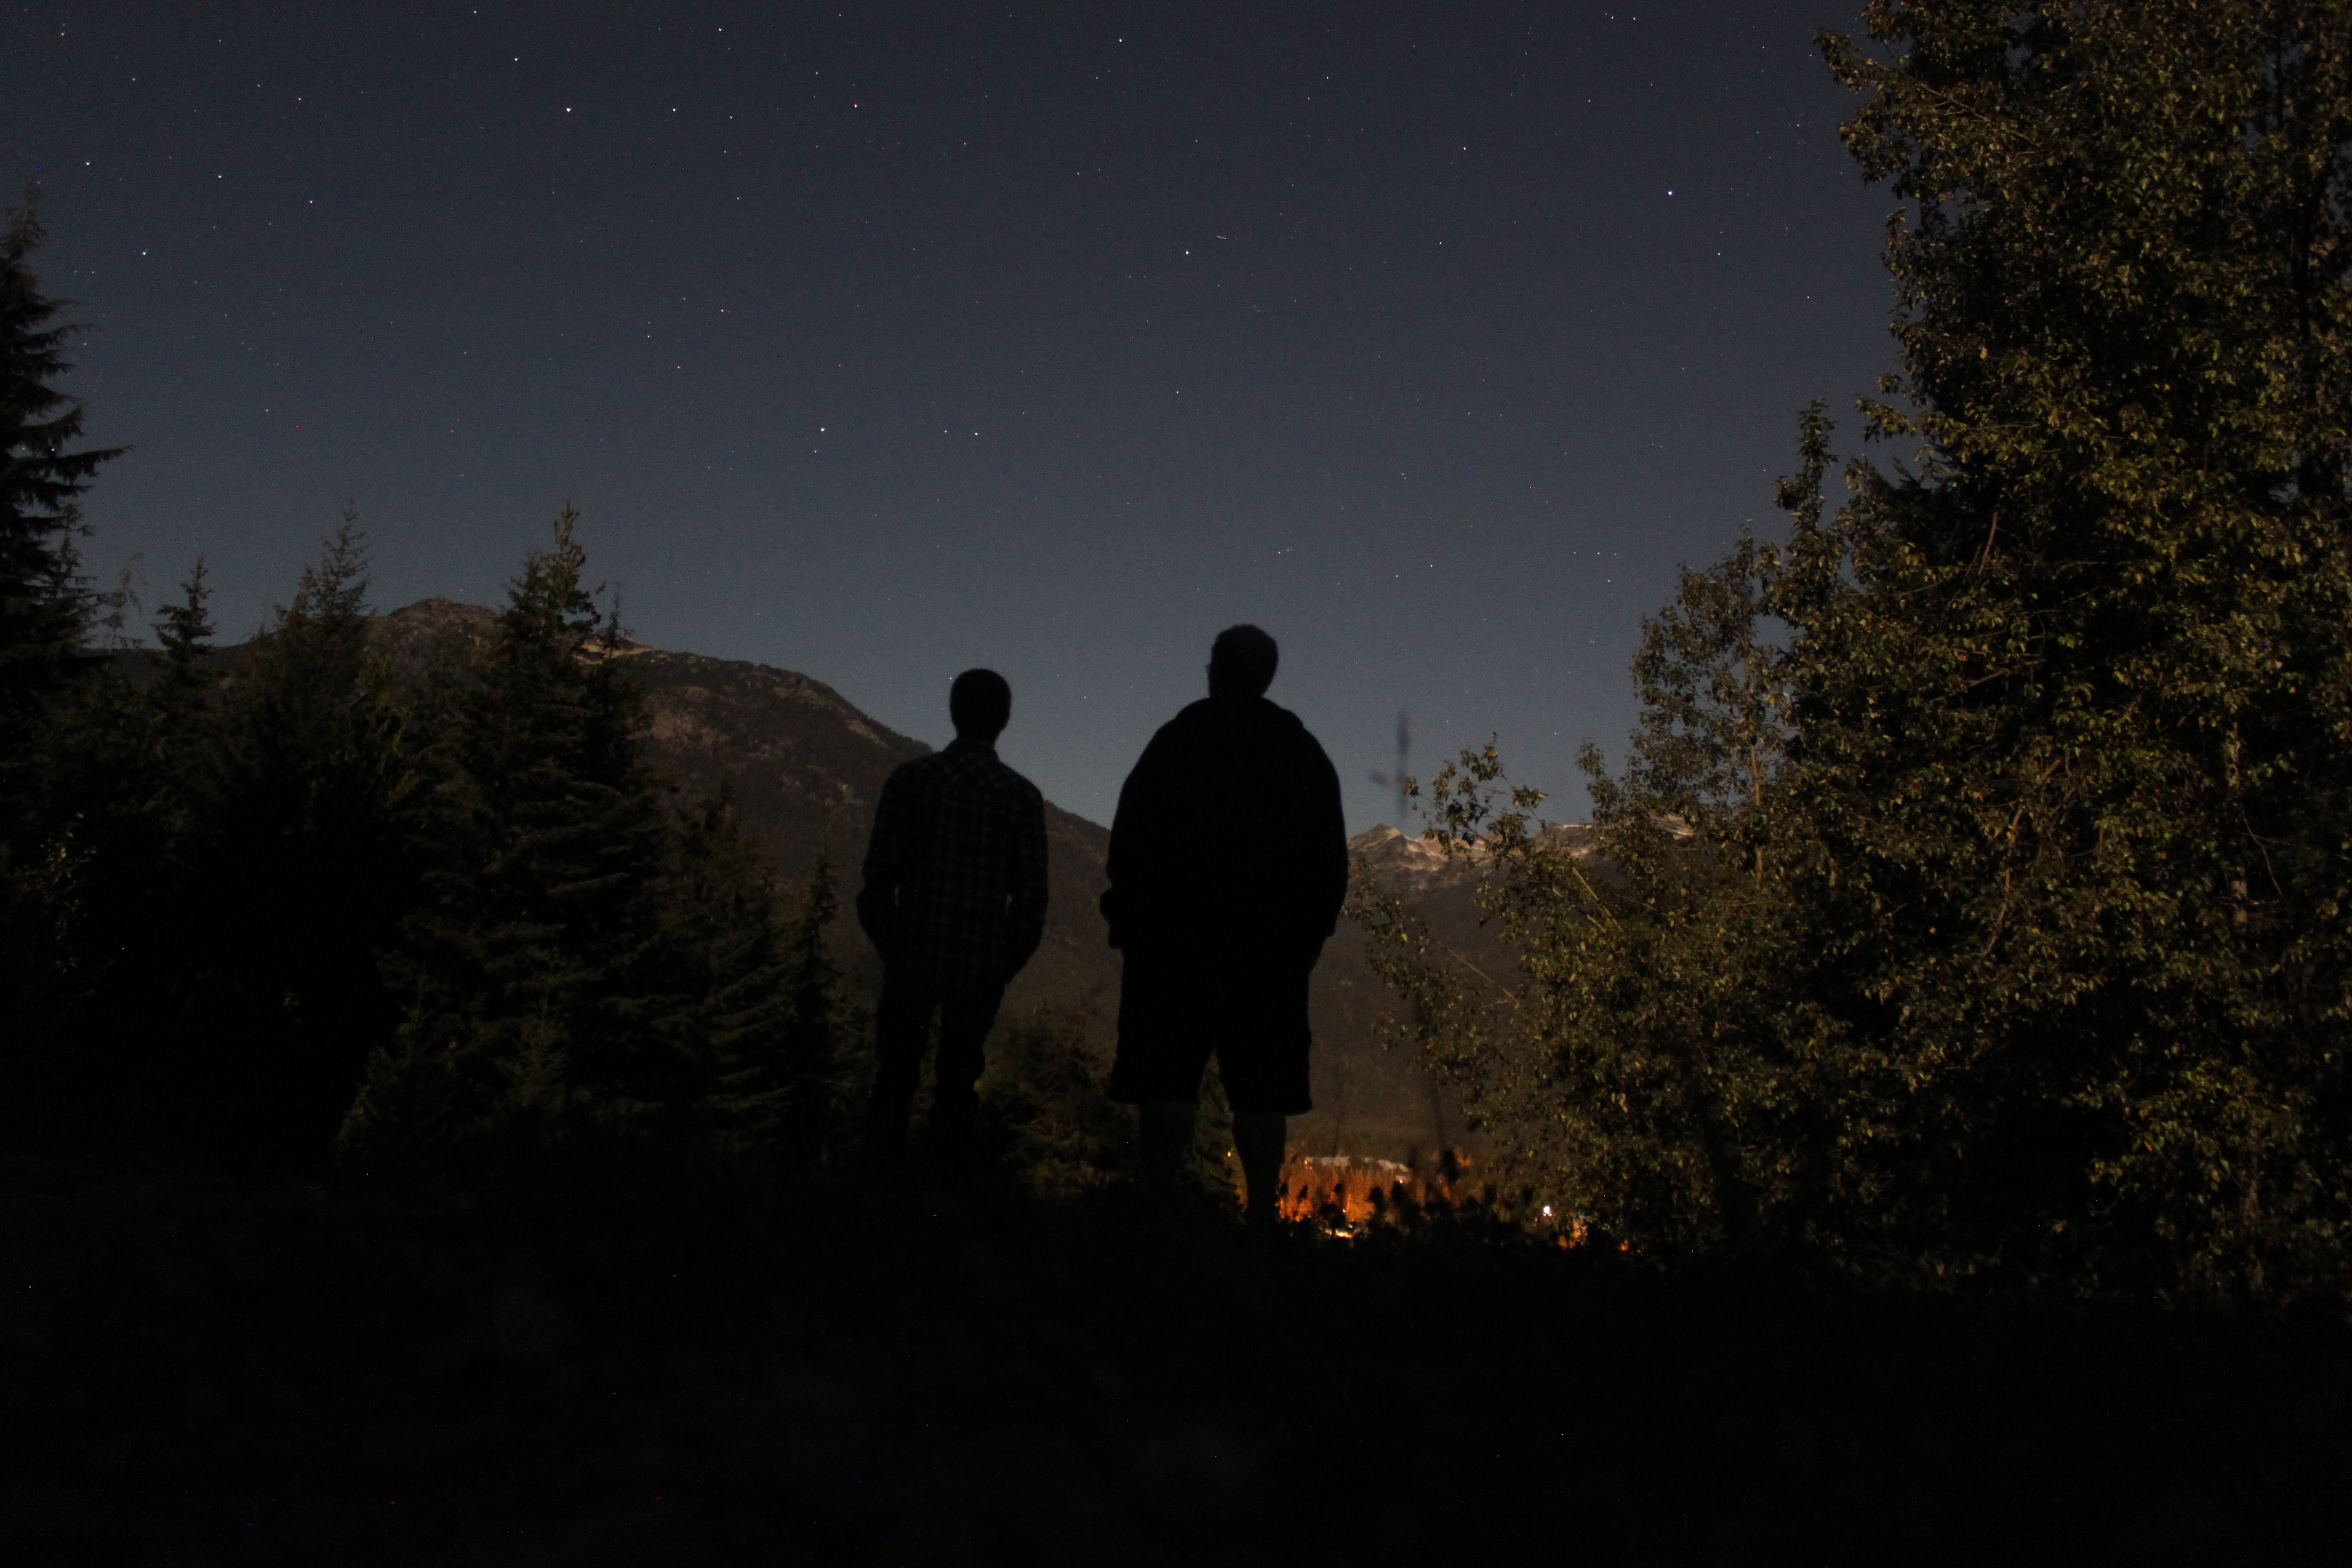 Hanging out under the full moon on Blackcomb staff hill in Whistler, British Columbia.